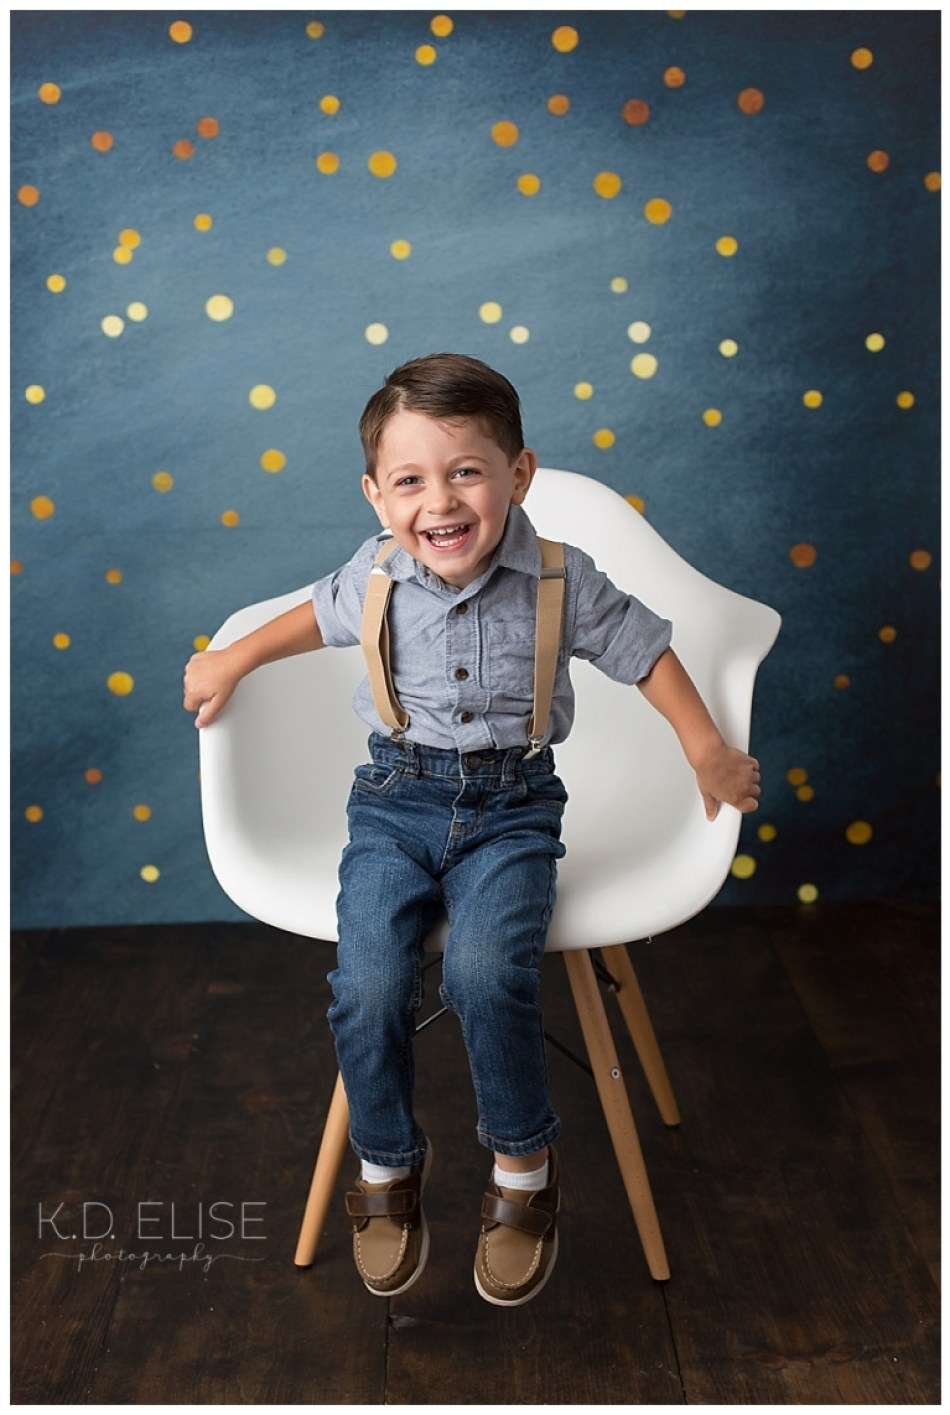 Smiling boy in white chair in front of a blue backdrop.